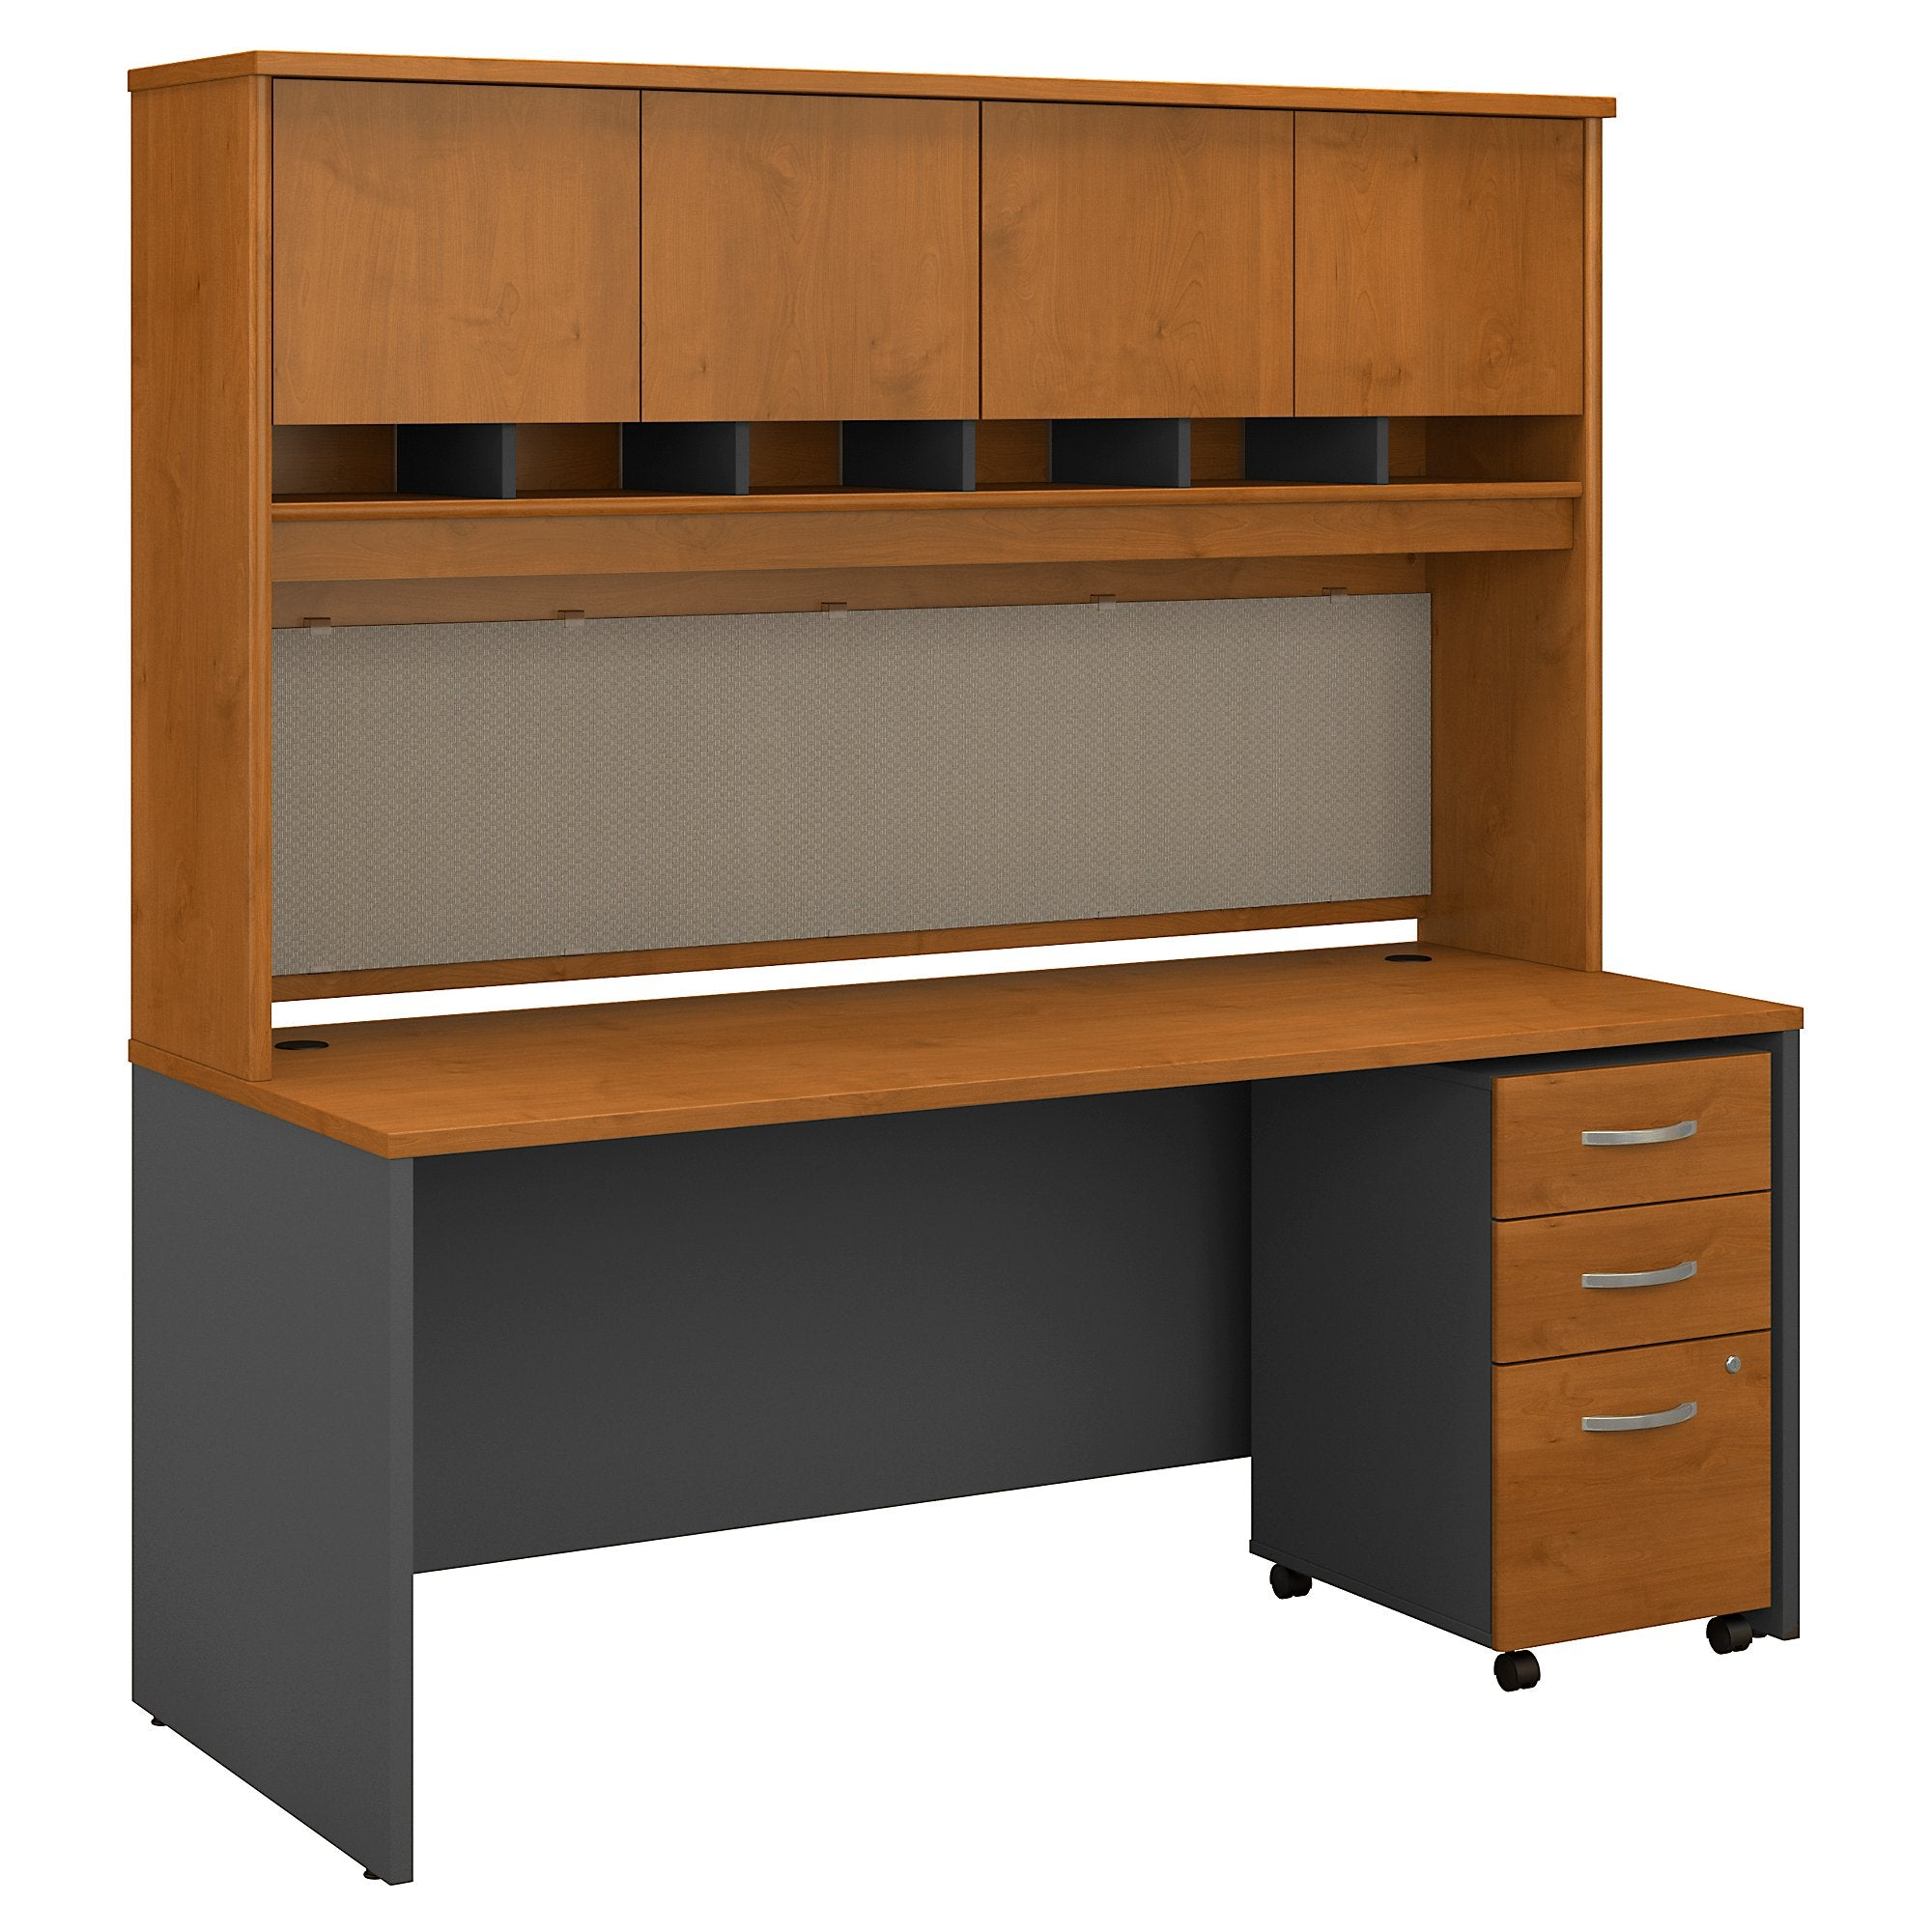 Bush Business Furniture Series C 72W x 30D Office Desk with Hutch and Mobile File Cabinet | Natural Cherry/Graphite Gray